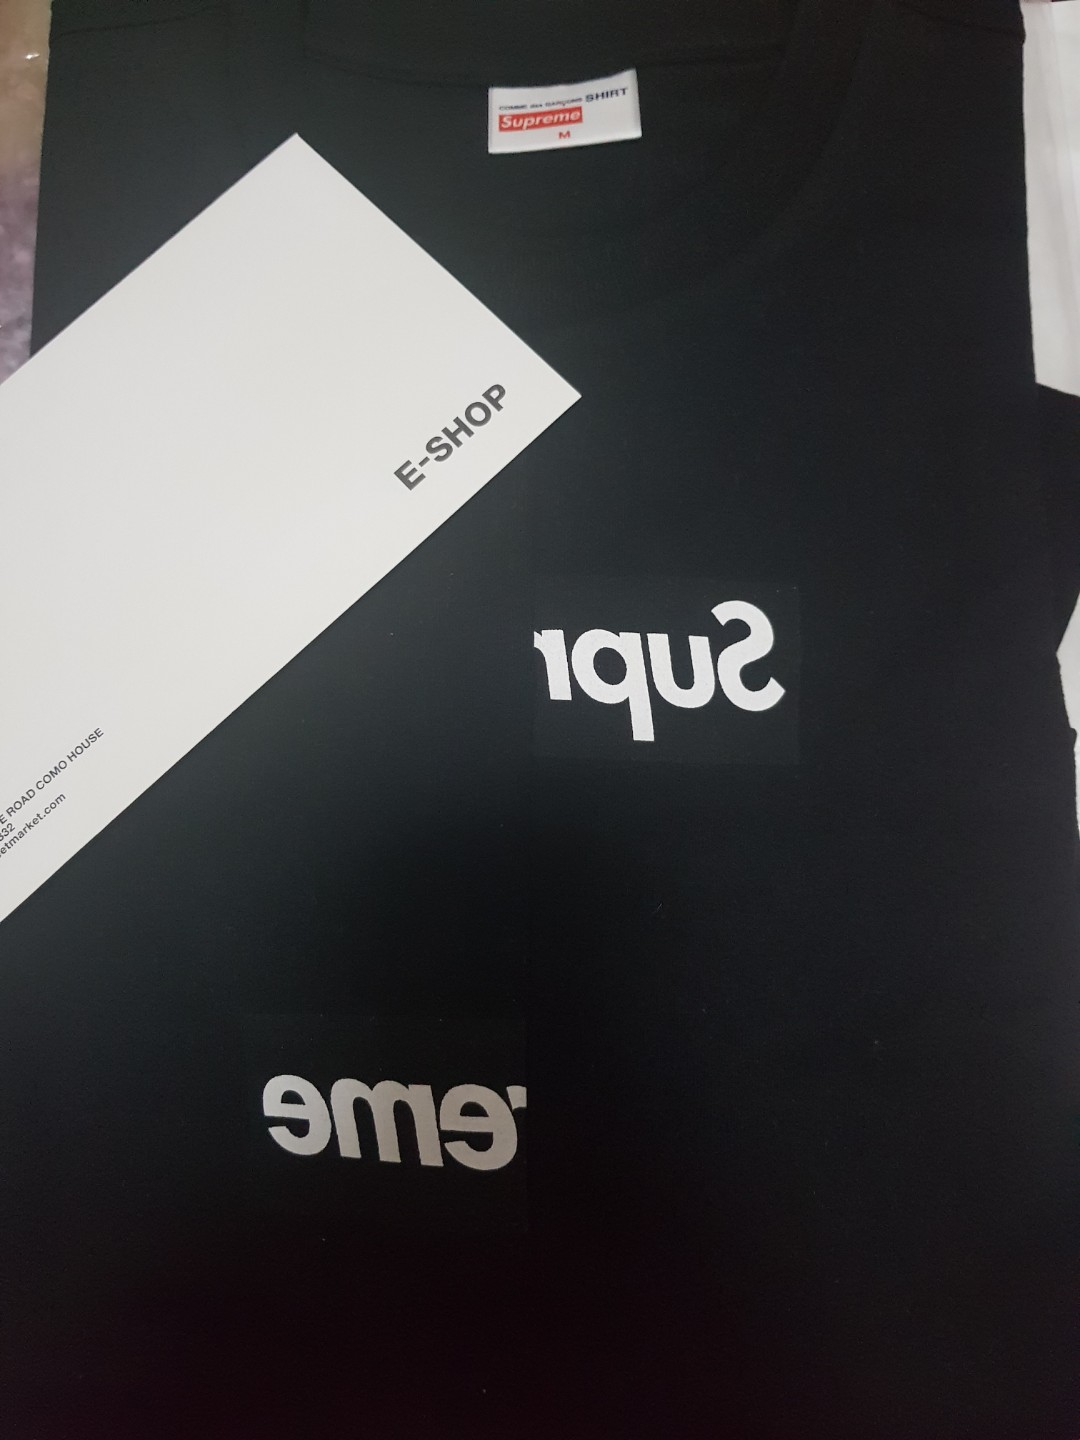 9c2bf8be Supreme x cdg bogo tee, Men's Fashion, Clothes, Tops on Carousell